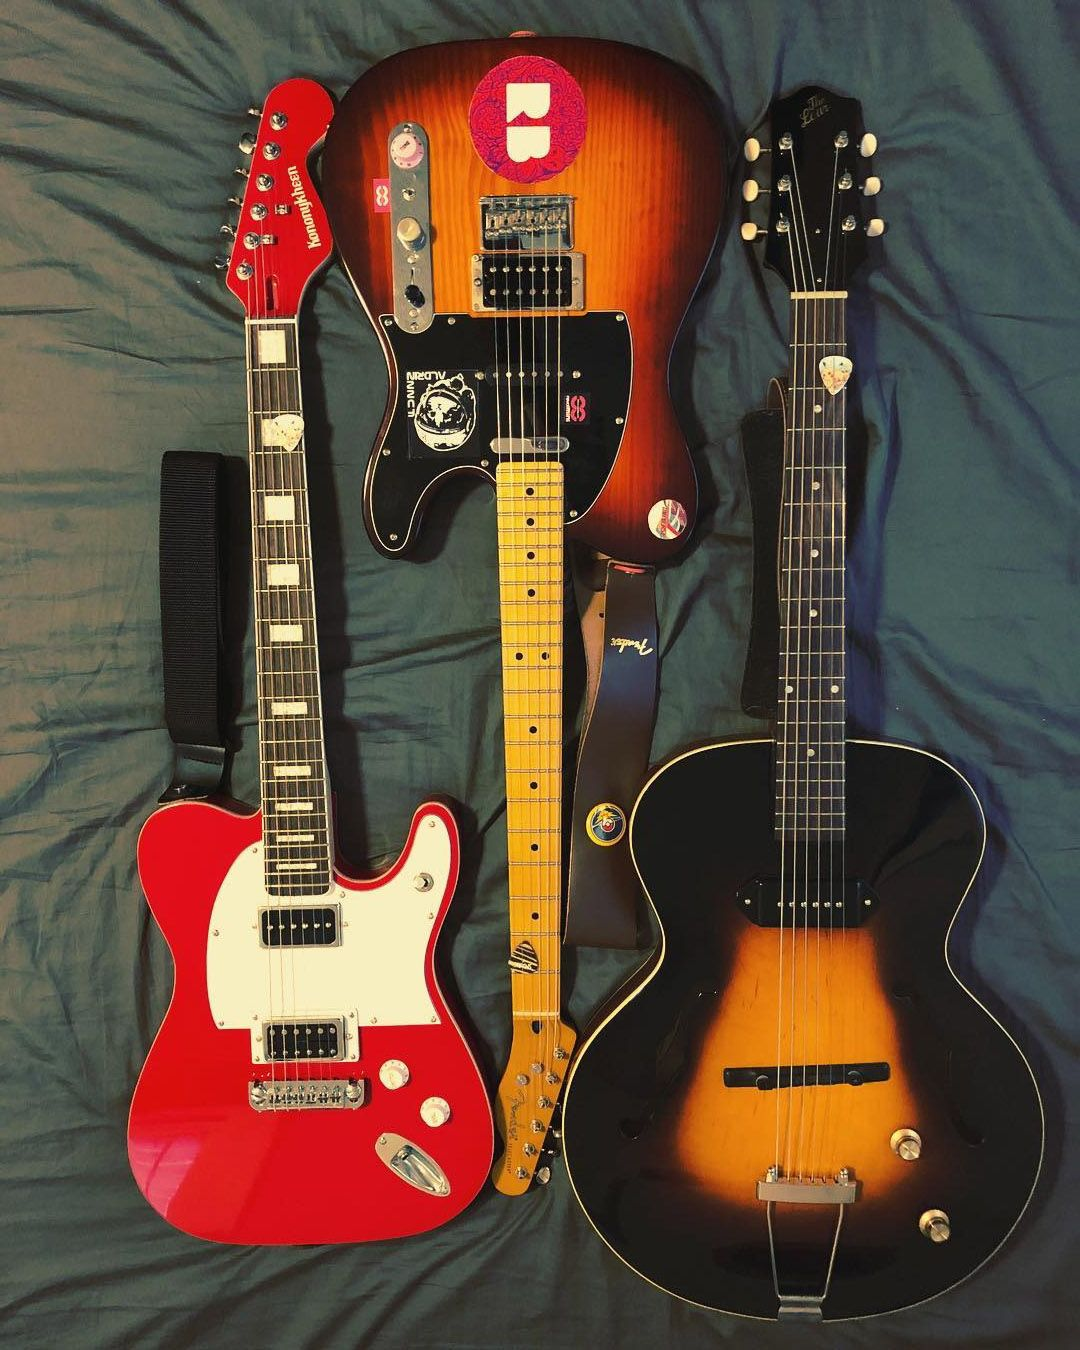 Pin By Jw On Electric Guitars In 2019 Guitar Design Guitar Bass